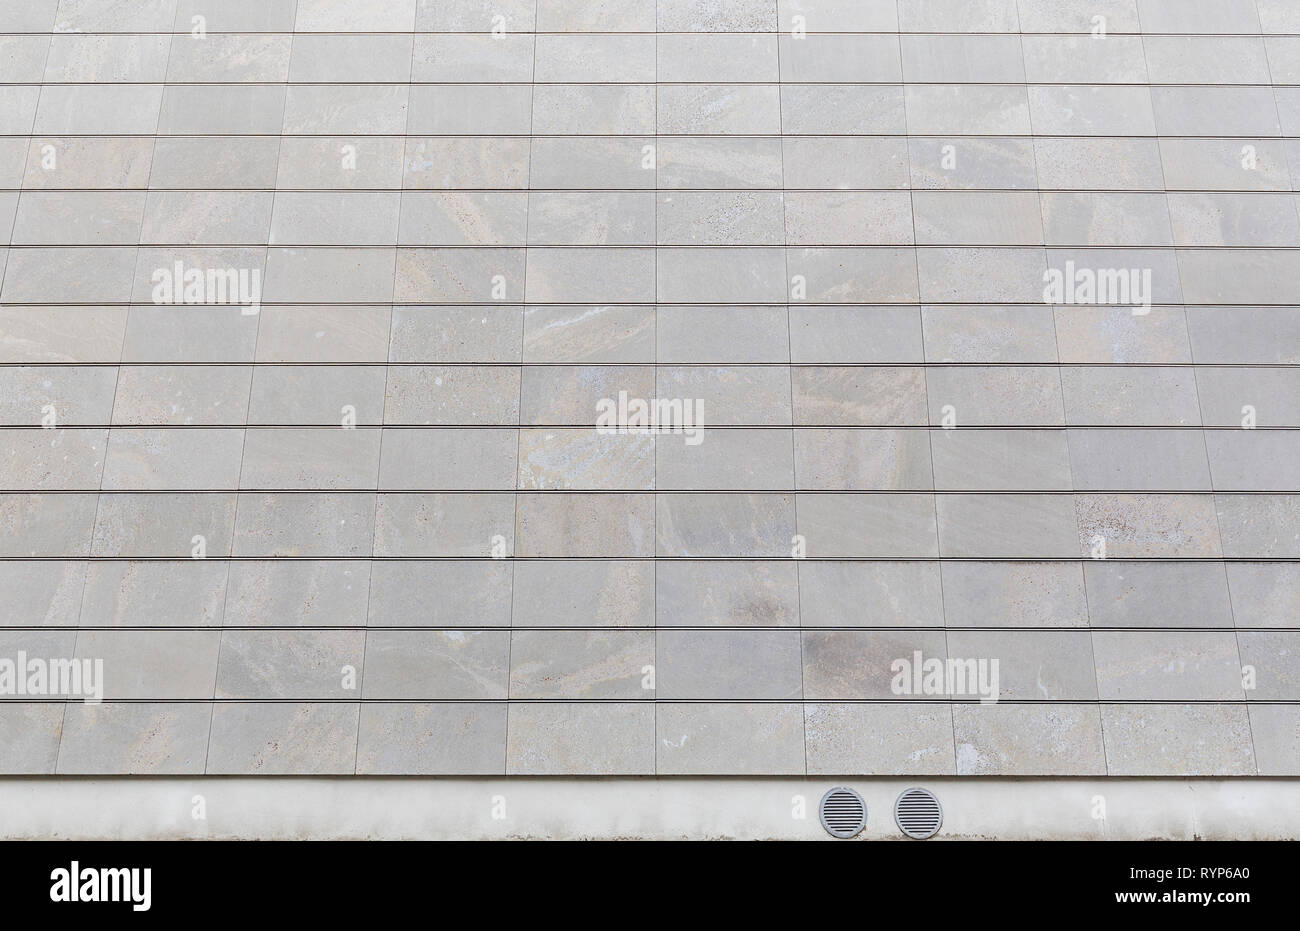 Full frame background of a new, modern and clean stone wall or building exterior. Stock Photo